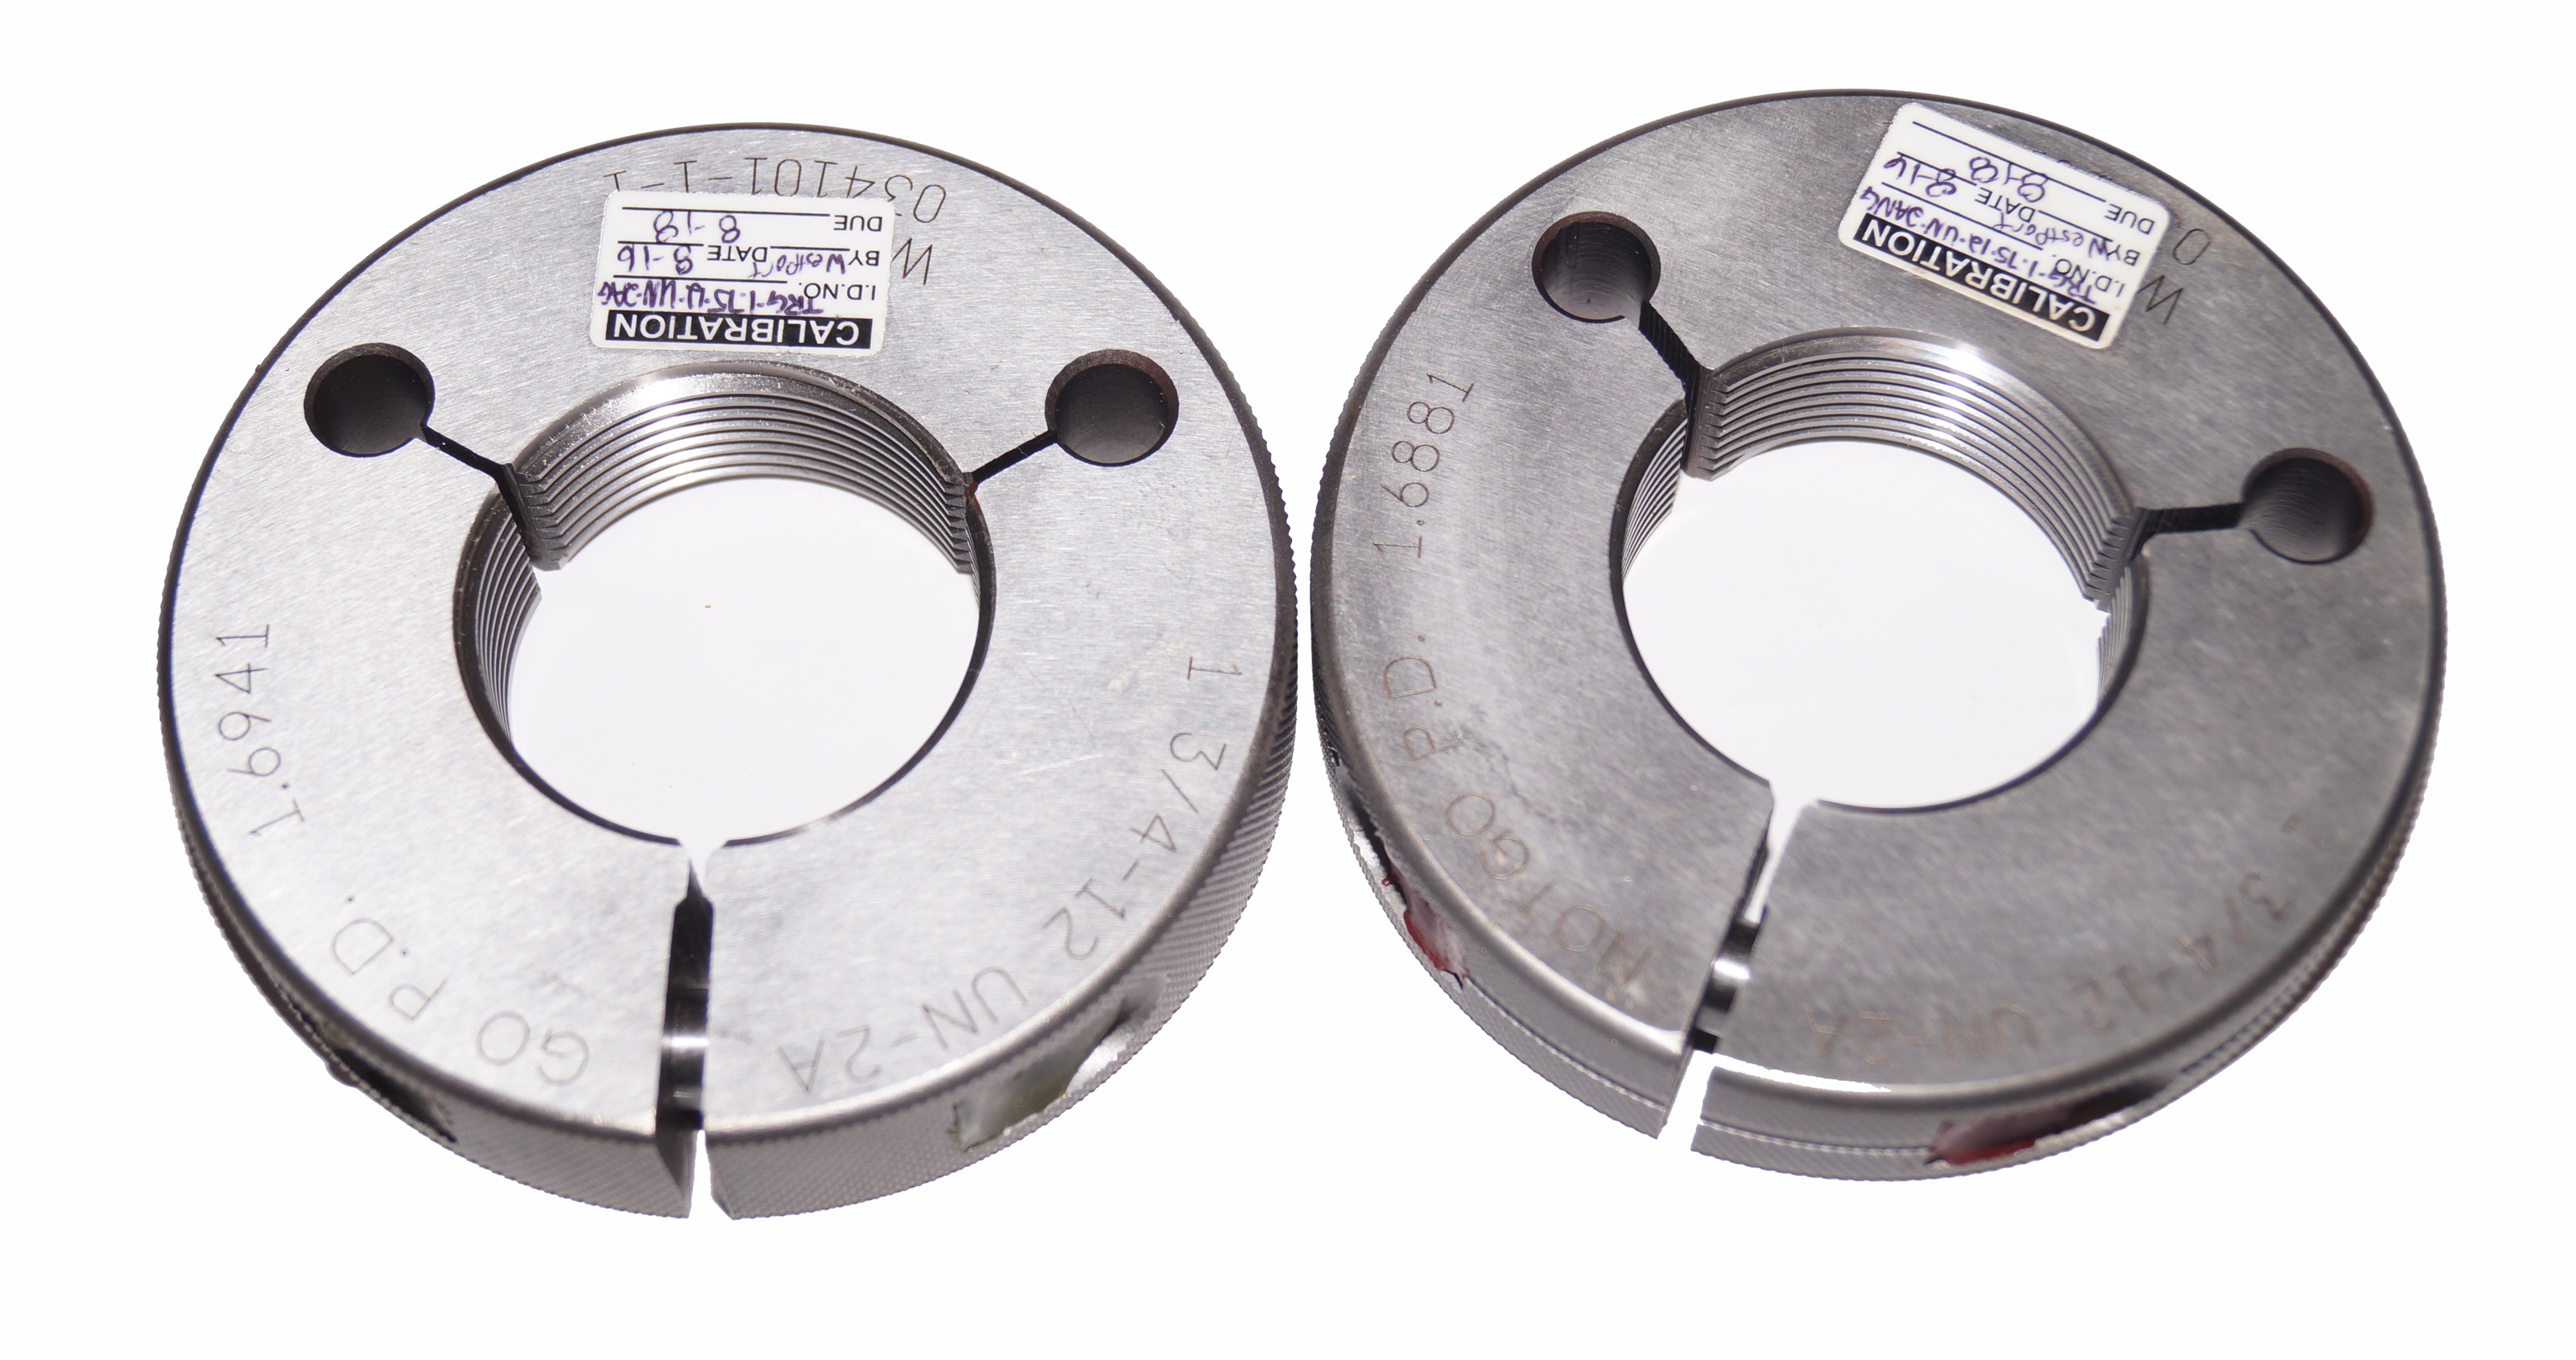 1//4 36 UNS SPECIAL THREAD PLUG GAGE .25 GO ONLY P.D = .2330 QUALITY 1//4-36 SPL.